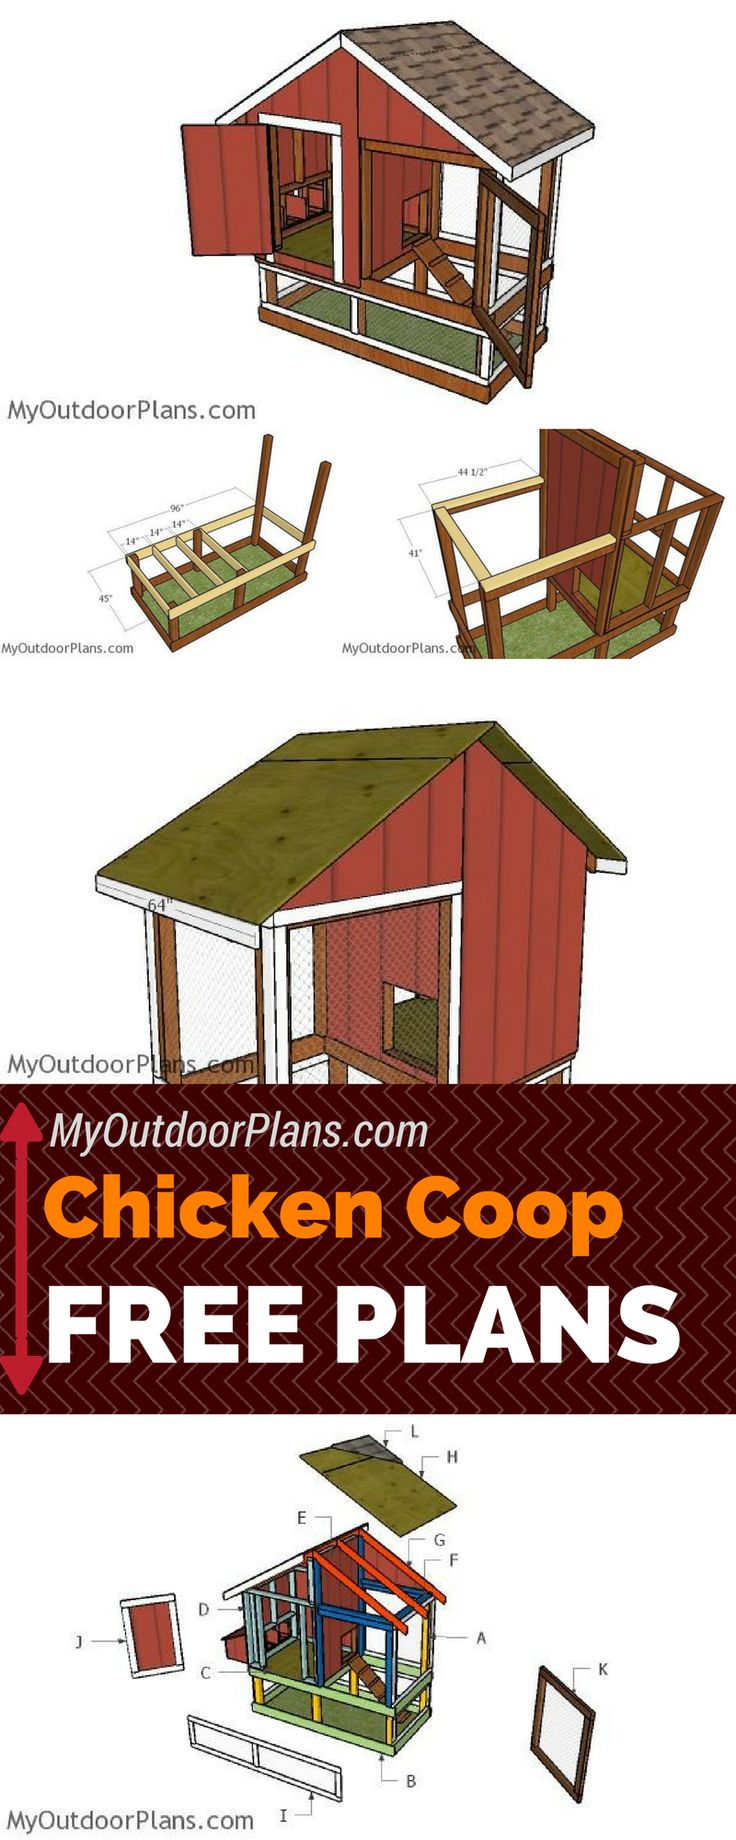 25 best ideas about chicken coop plans on pinterest diy for Small chicken coop blueprints free